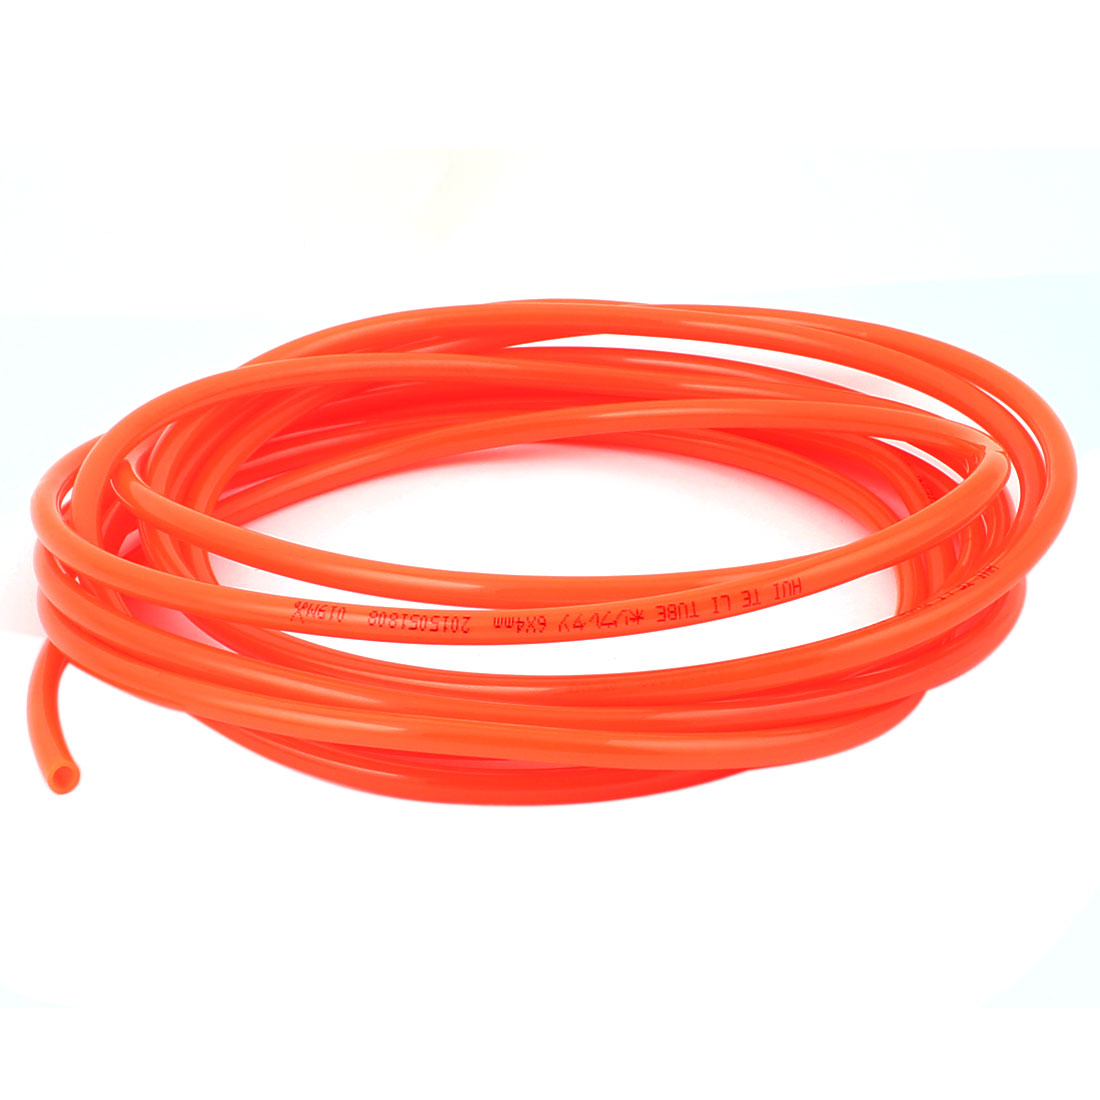 5M Long 6mm x 4mm Dia Pneumatic Polyurethane PU Air Tube Tubing Pipe Hose Orange